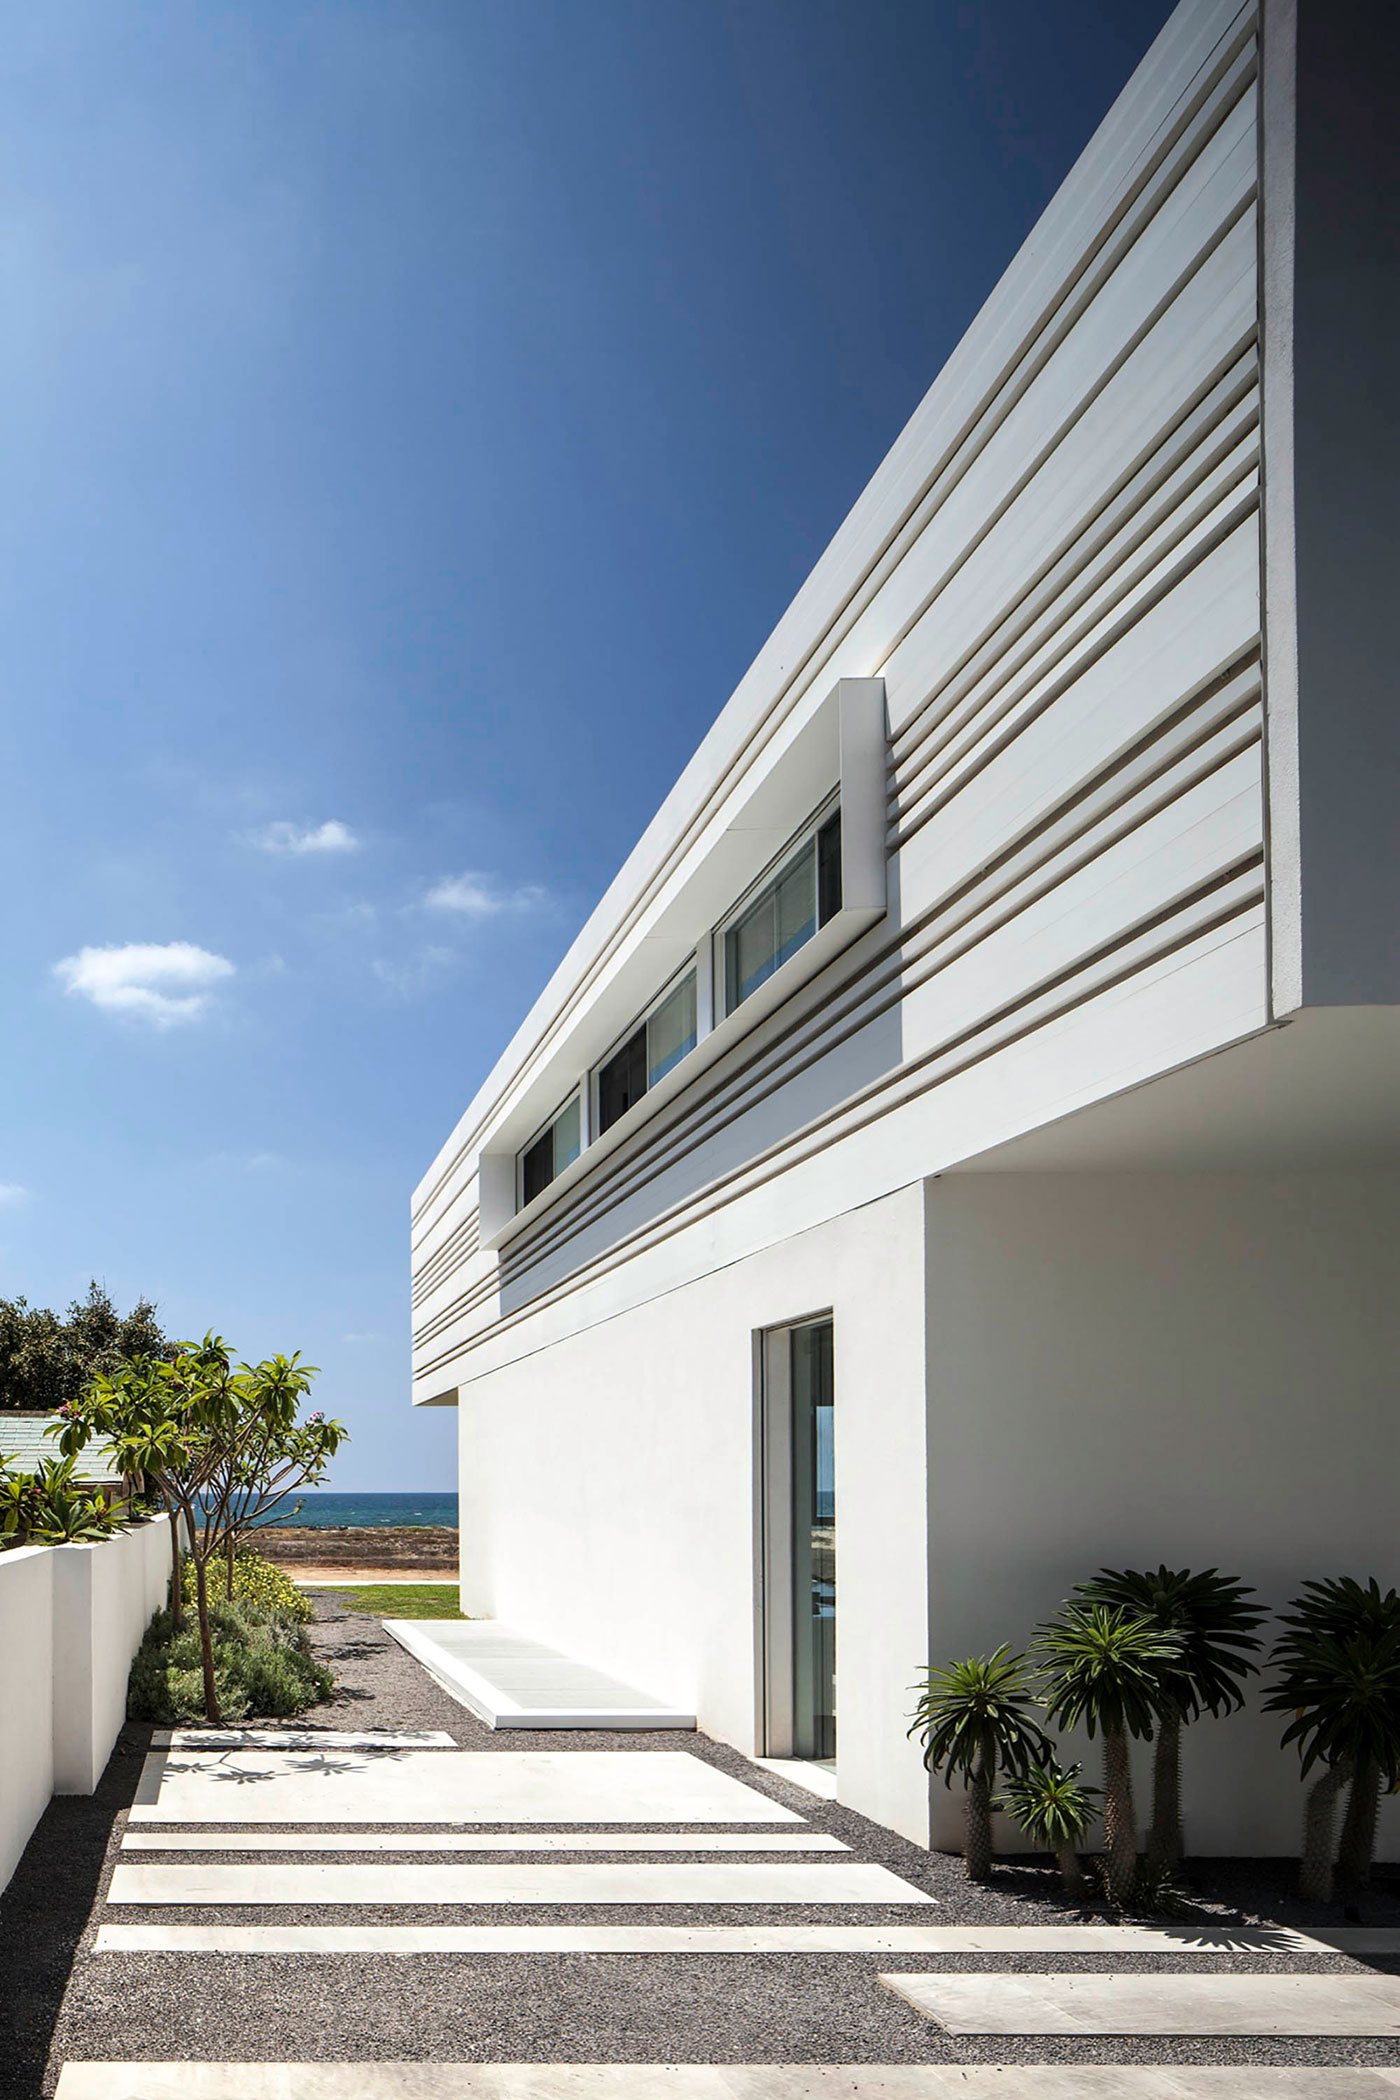 Luminous A House by the Sea home with Mediterranean Sea views by Pitsou Kedem Architects-04